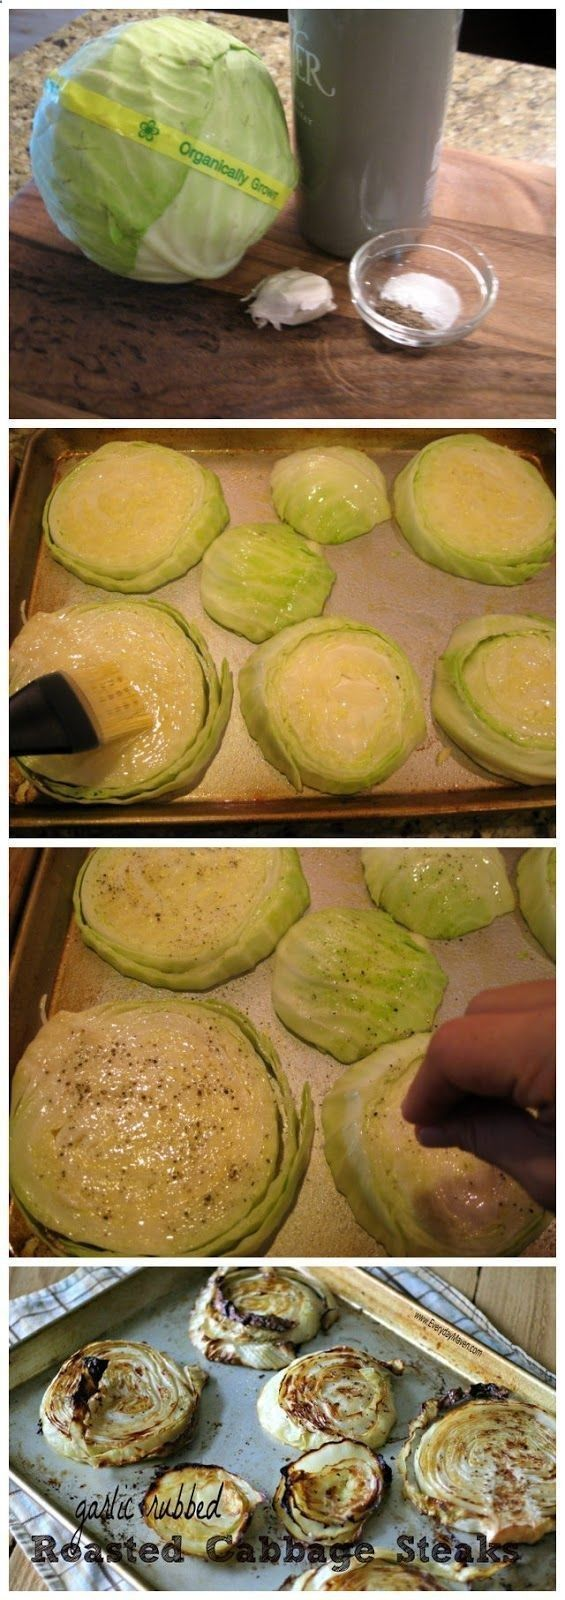 Preheat oven to 400F, spray baking sheet with non-stick cooking spray. Pull outer leaf off cabbage, cut cabbage from top to bottom (bottom being root) into 1 thick slices. Rub both sides of cabbage with smashed garlic. Use pastry brush to evenly spread the olive oil over both sides of the cabbage. Sprinkle each side with bit of kosher salt and cracked black pepper. Roast on middle rack for 30 min. Carefully flip the cabbage and roast for an additional 30 min until edges are brown and crispy.